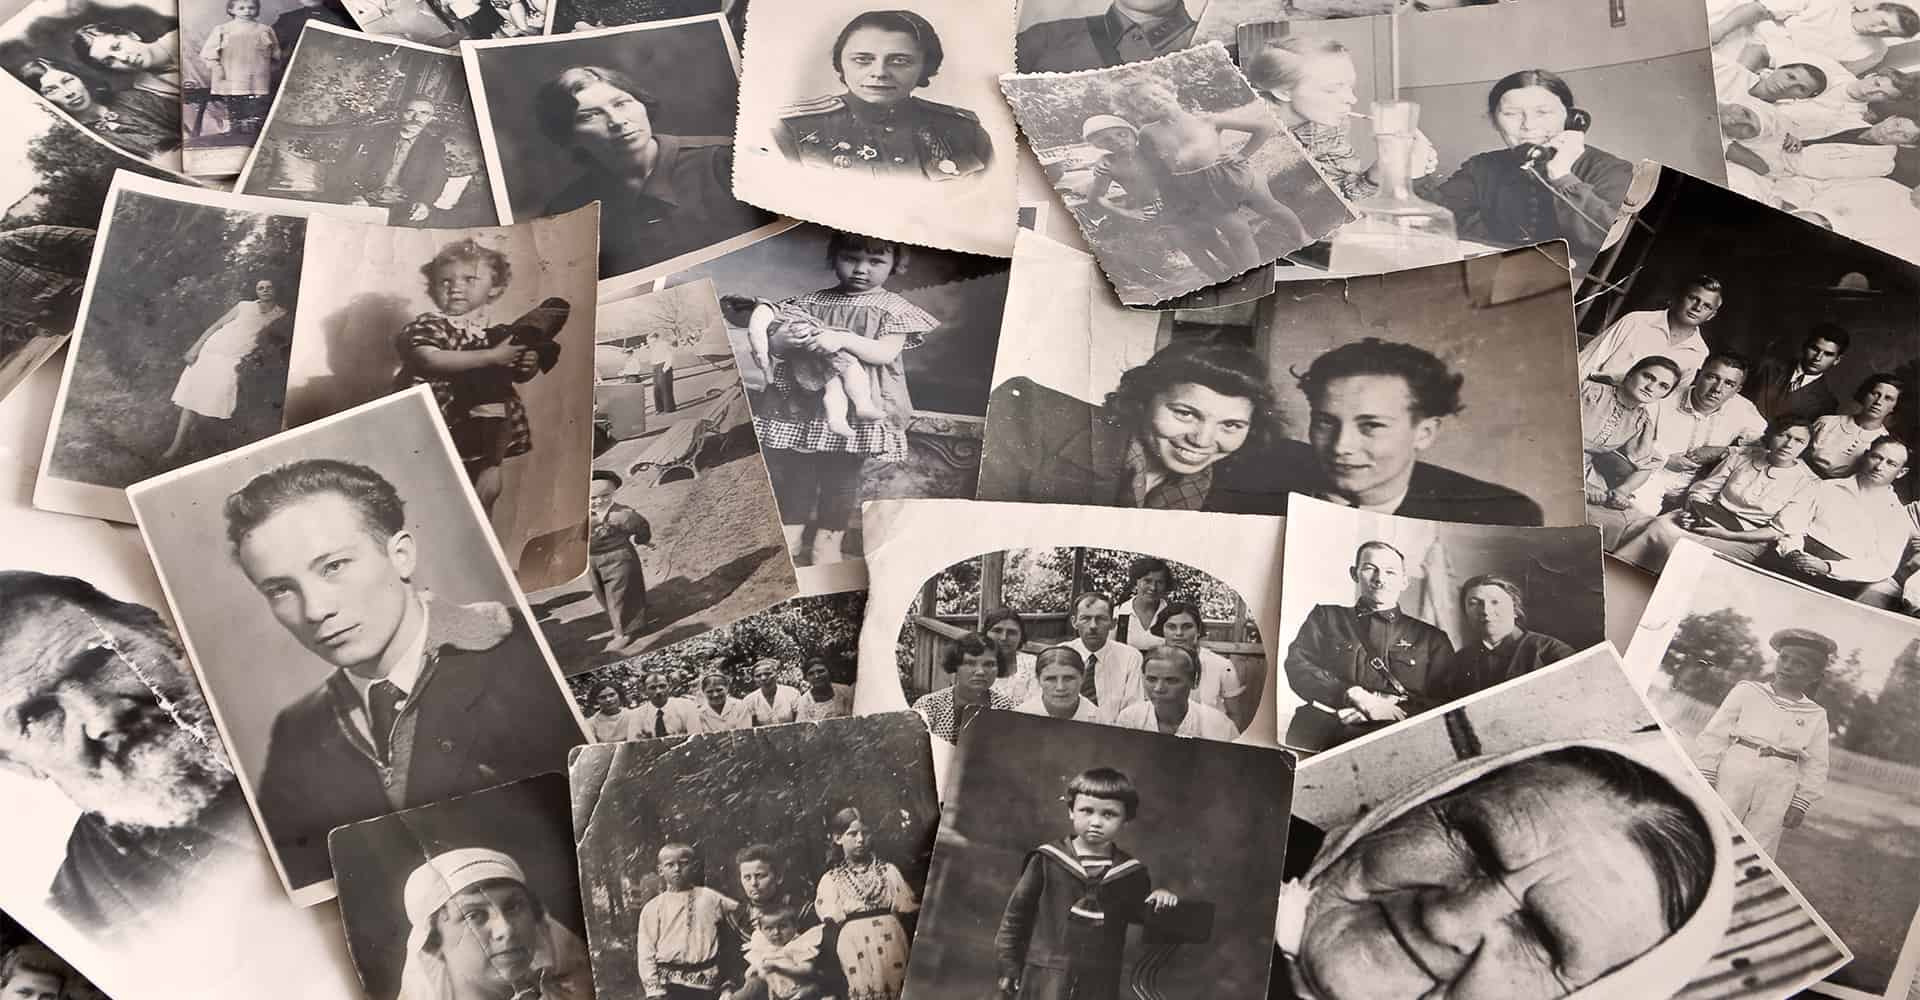 A group of family photographs piled up to build a family tree using genealogy.